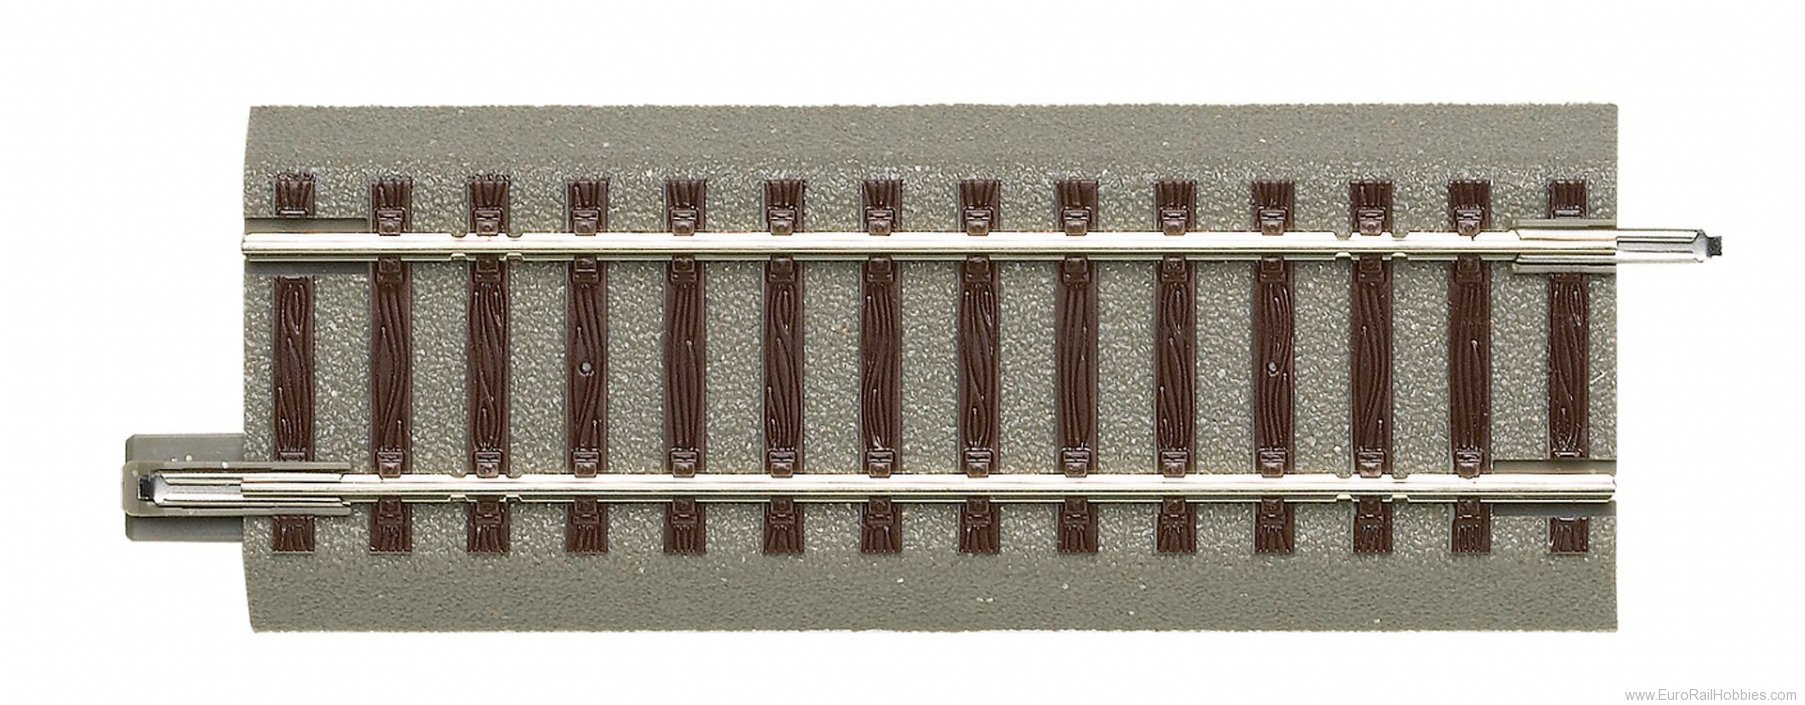 Roco 61120 geoLINE Transition Track